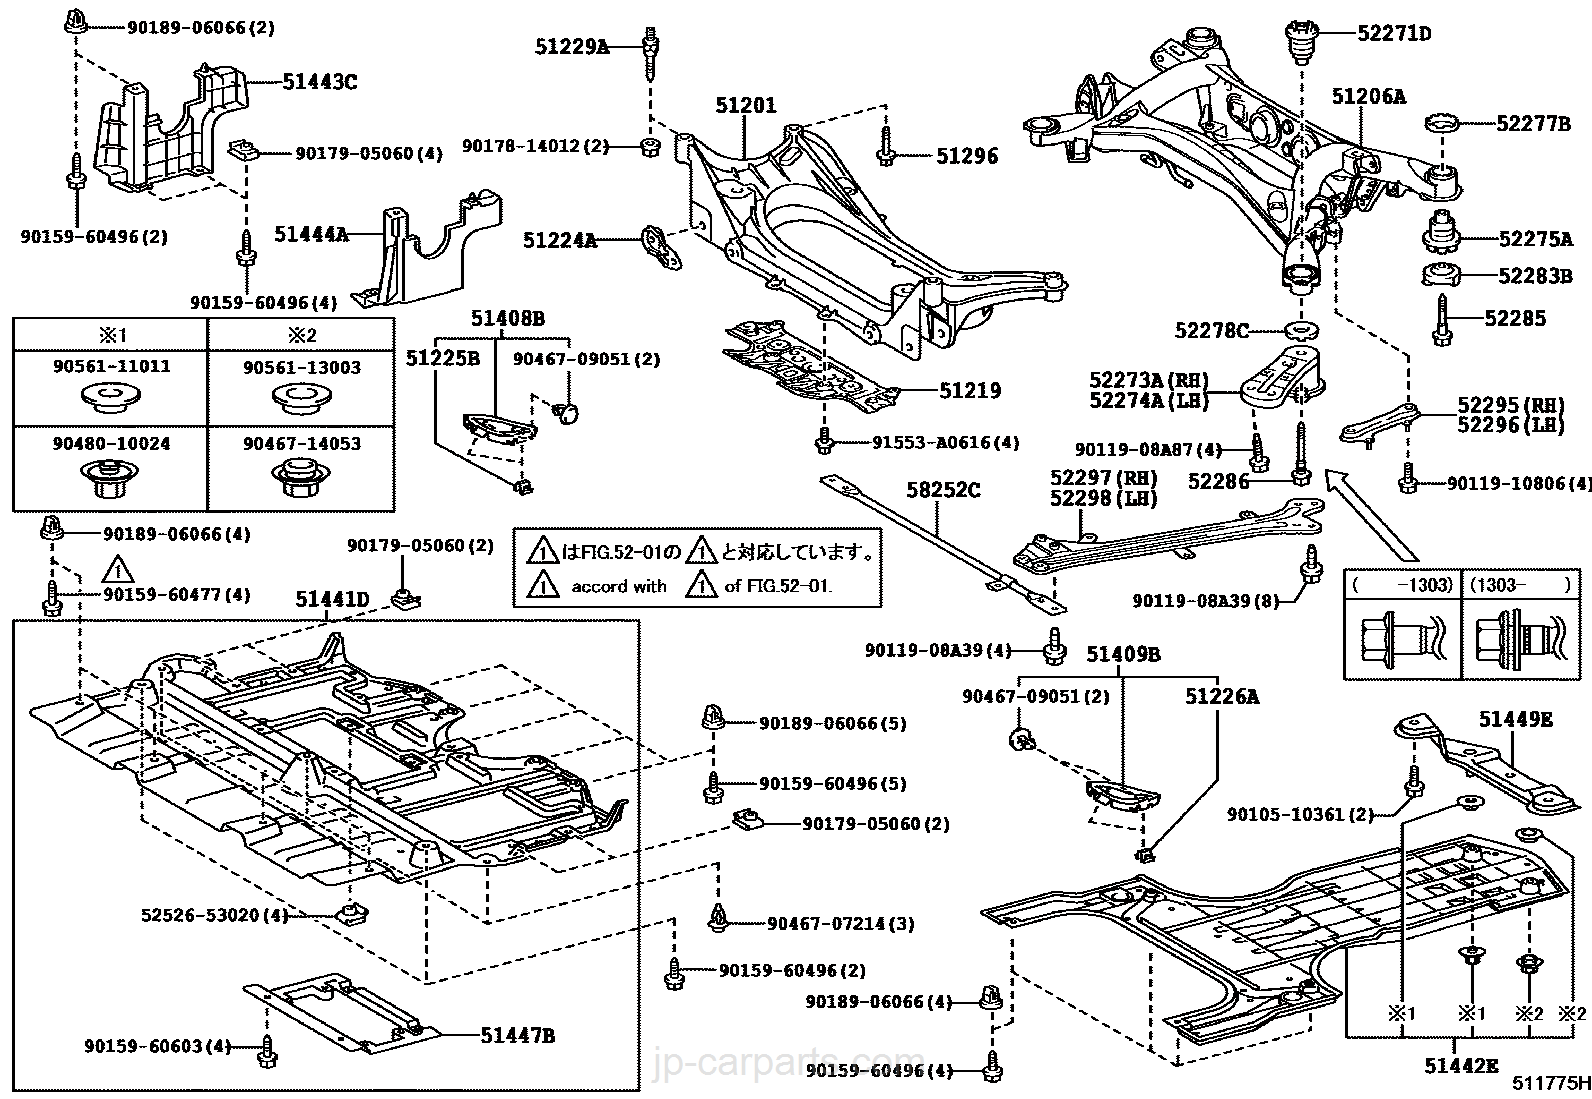 jeep liberty headlight wiring diagram wiring diagrams 2003 jeep liberty headlight wiring diagram digital